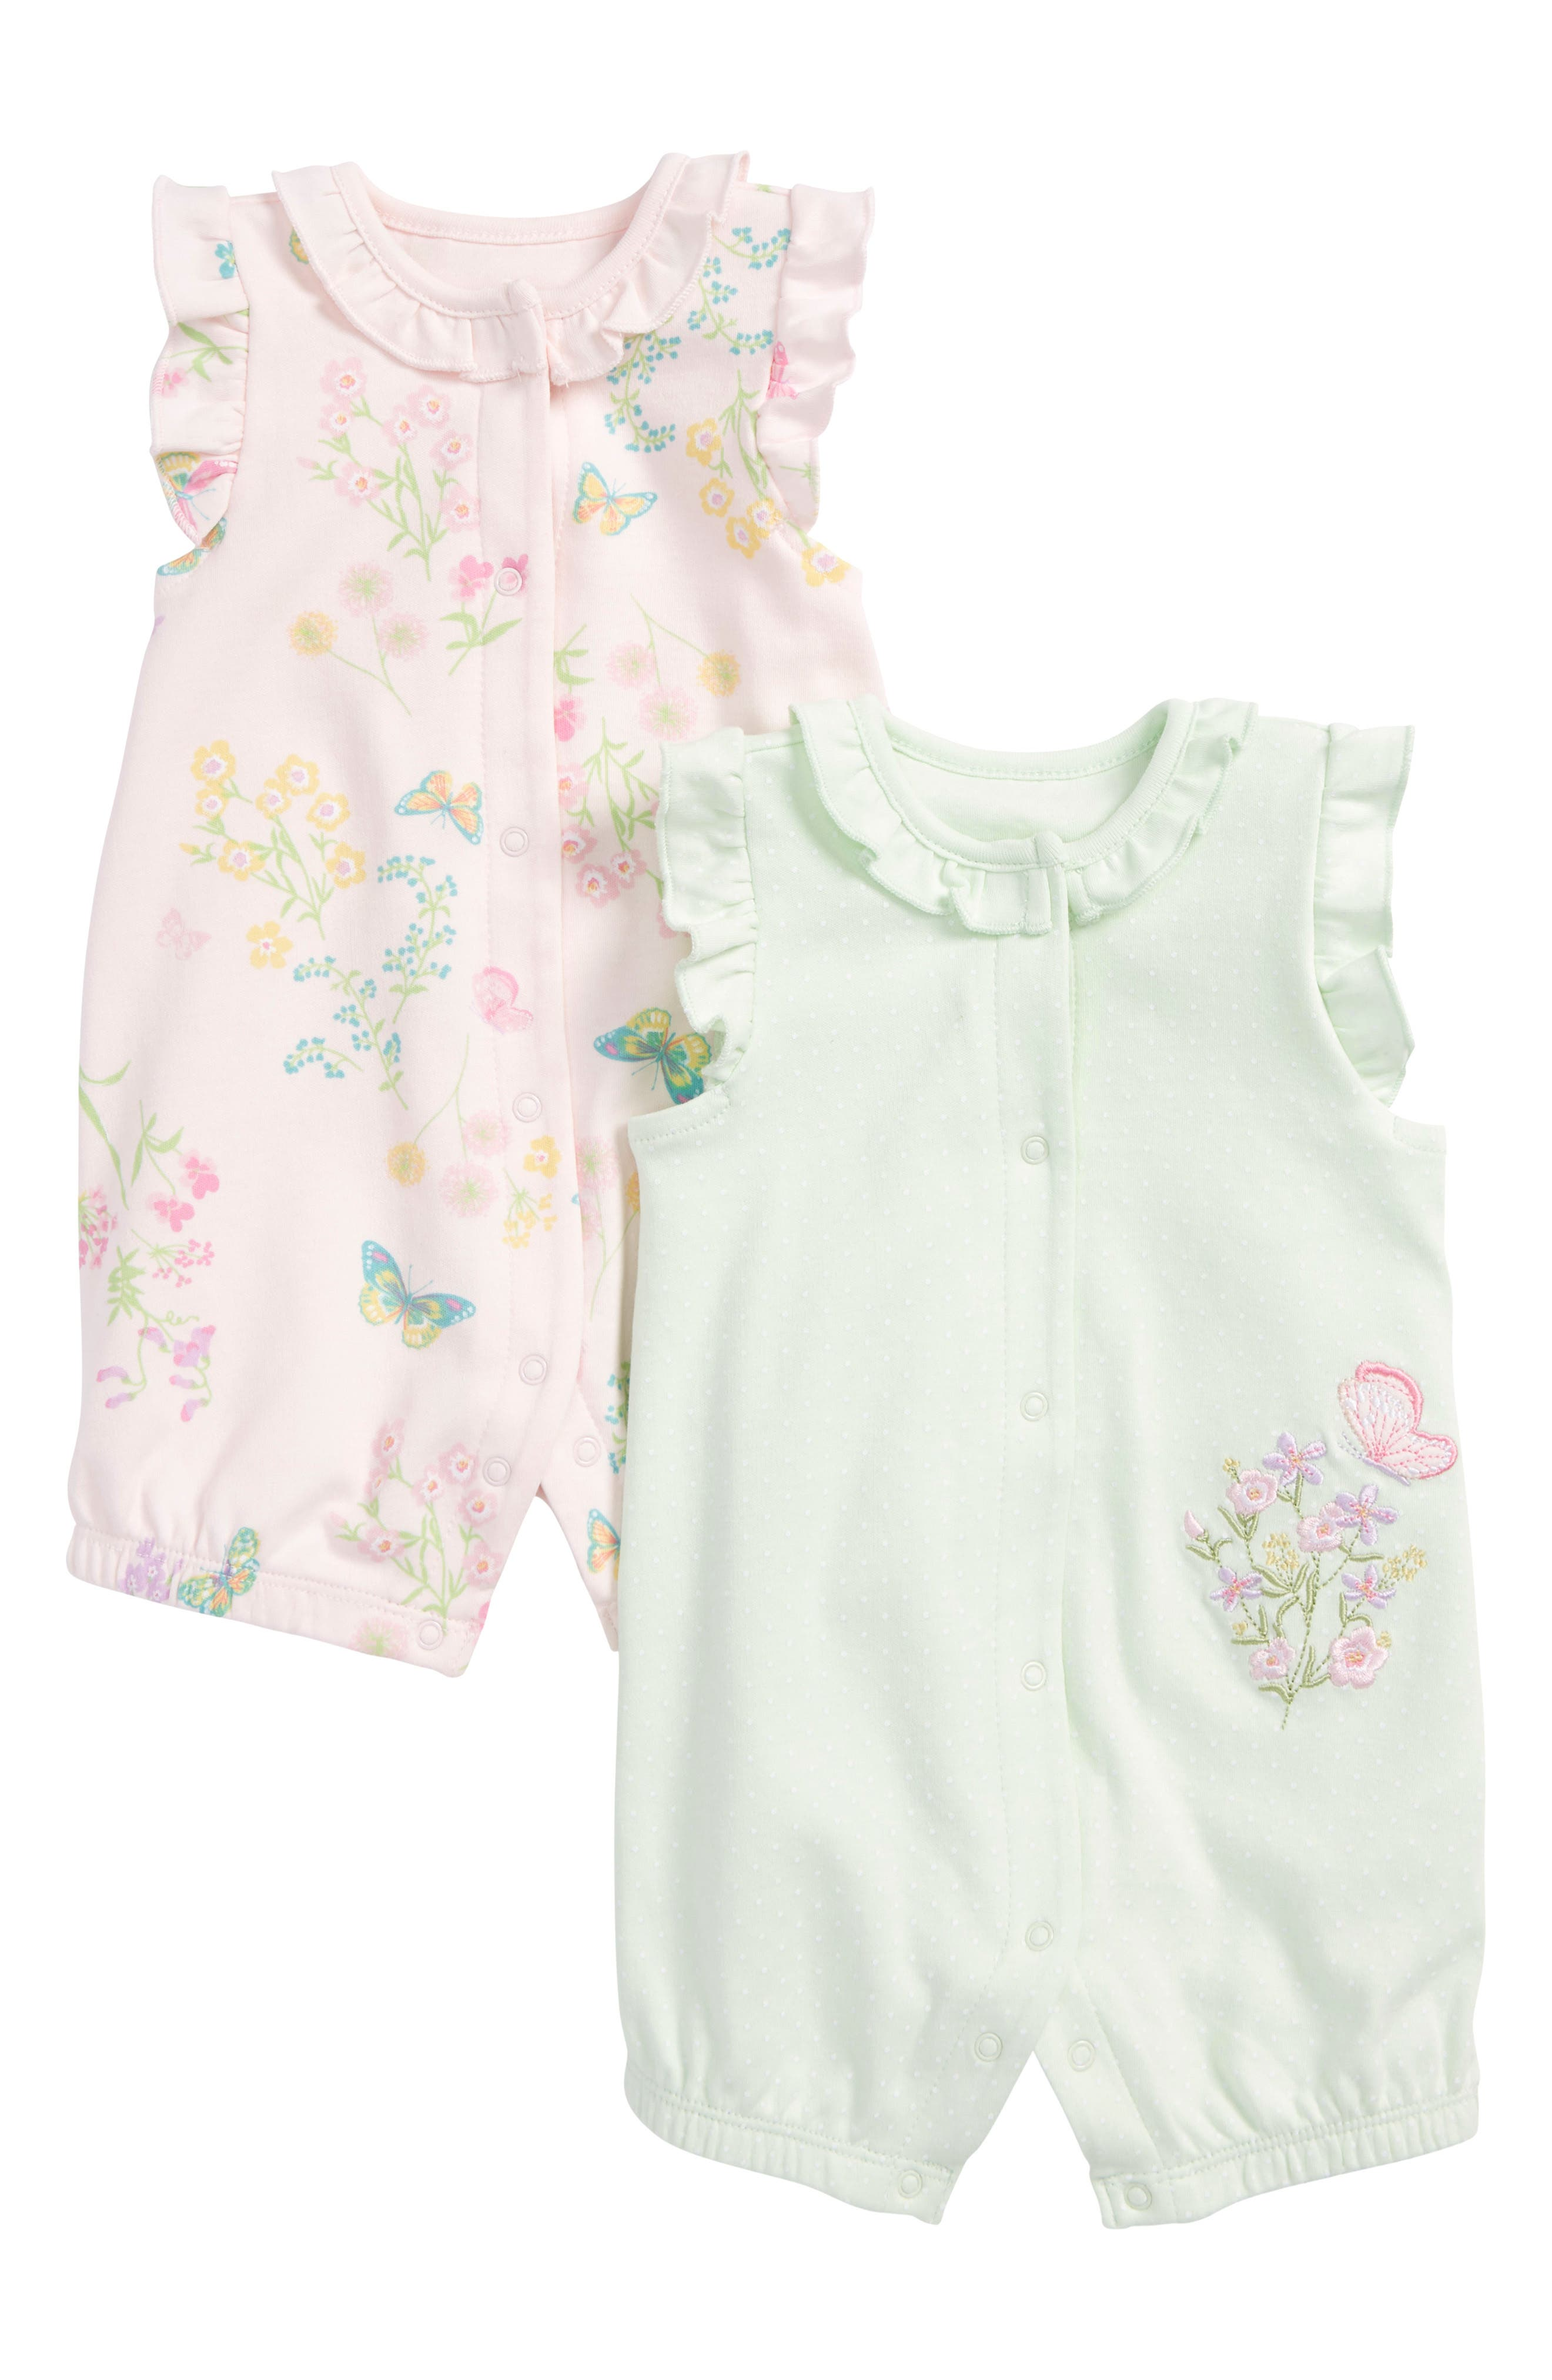 Botanical 2-Pack Rompers,                         Main,                         color, 440